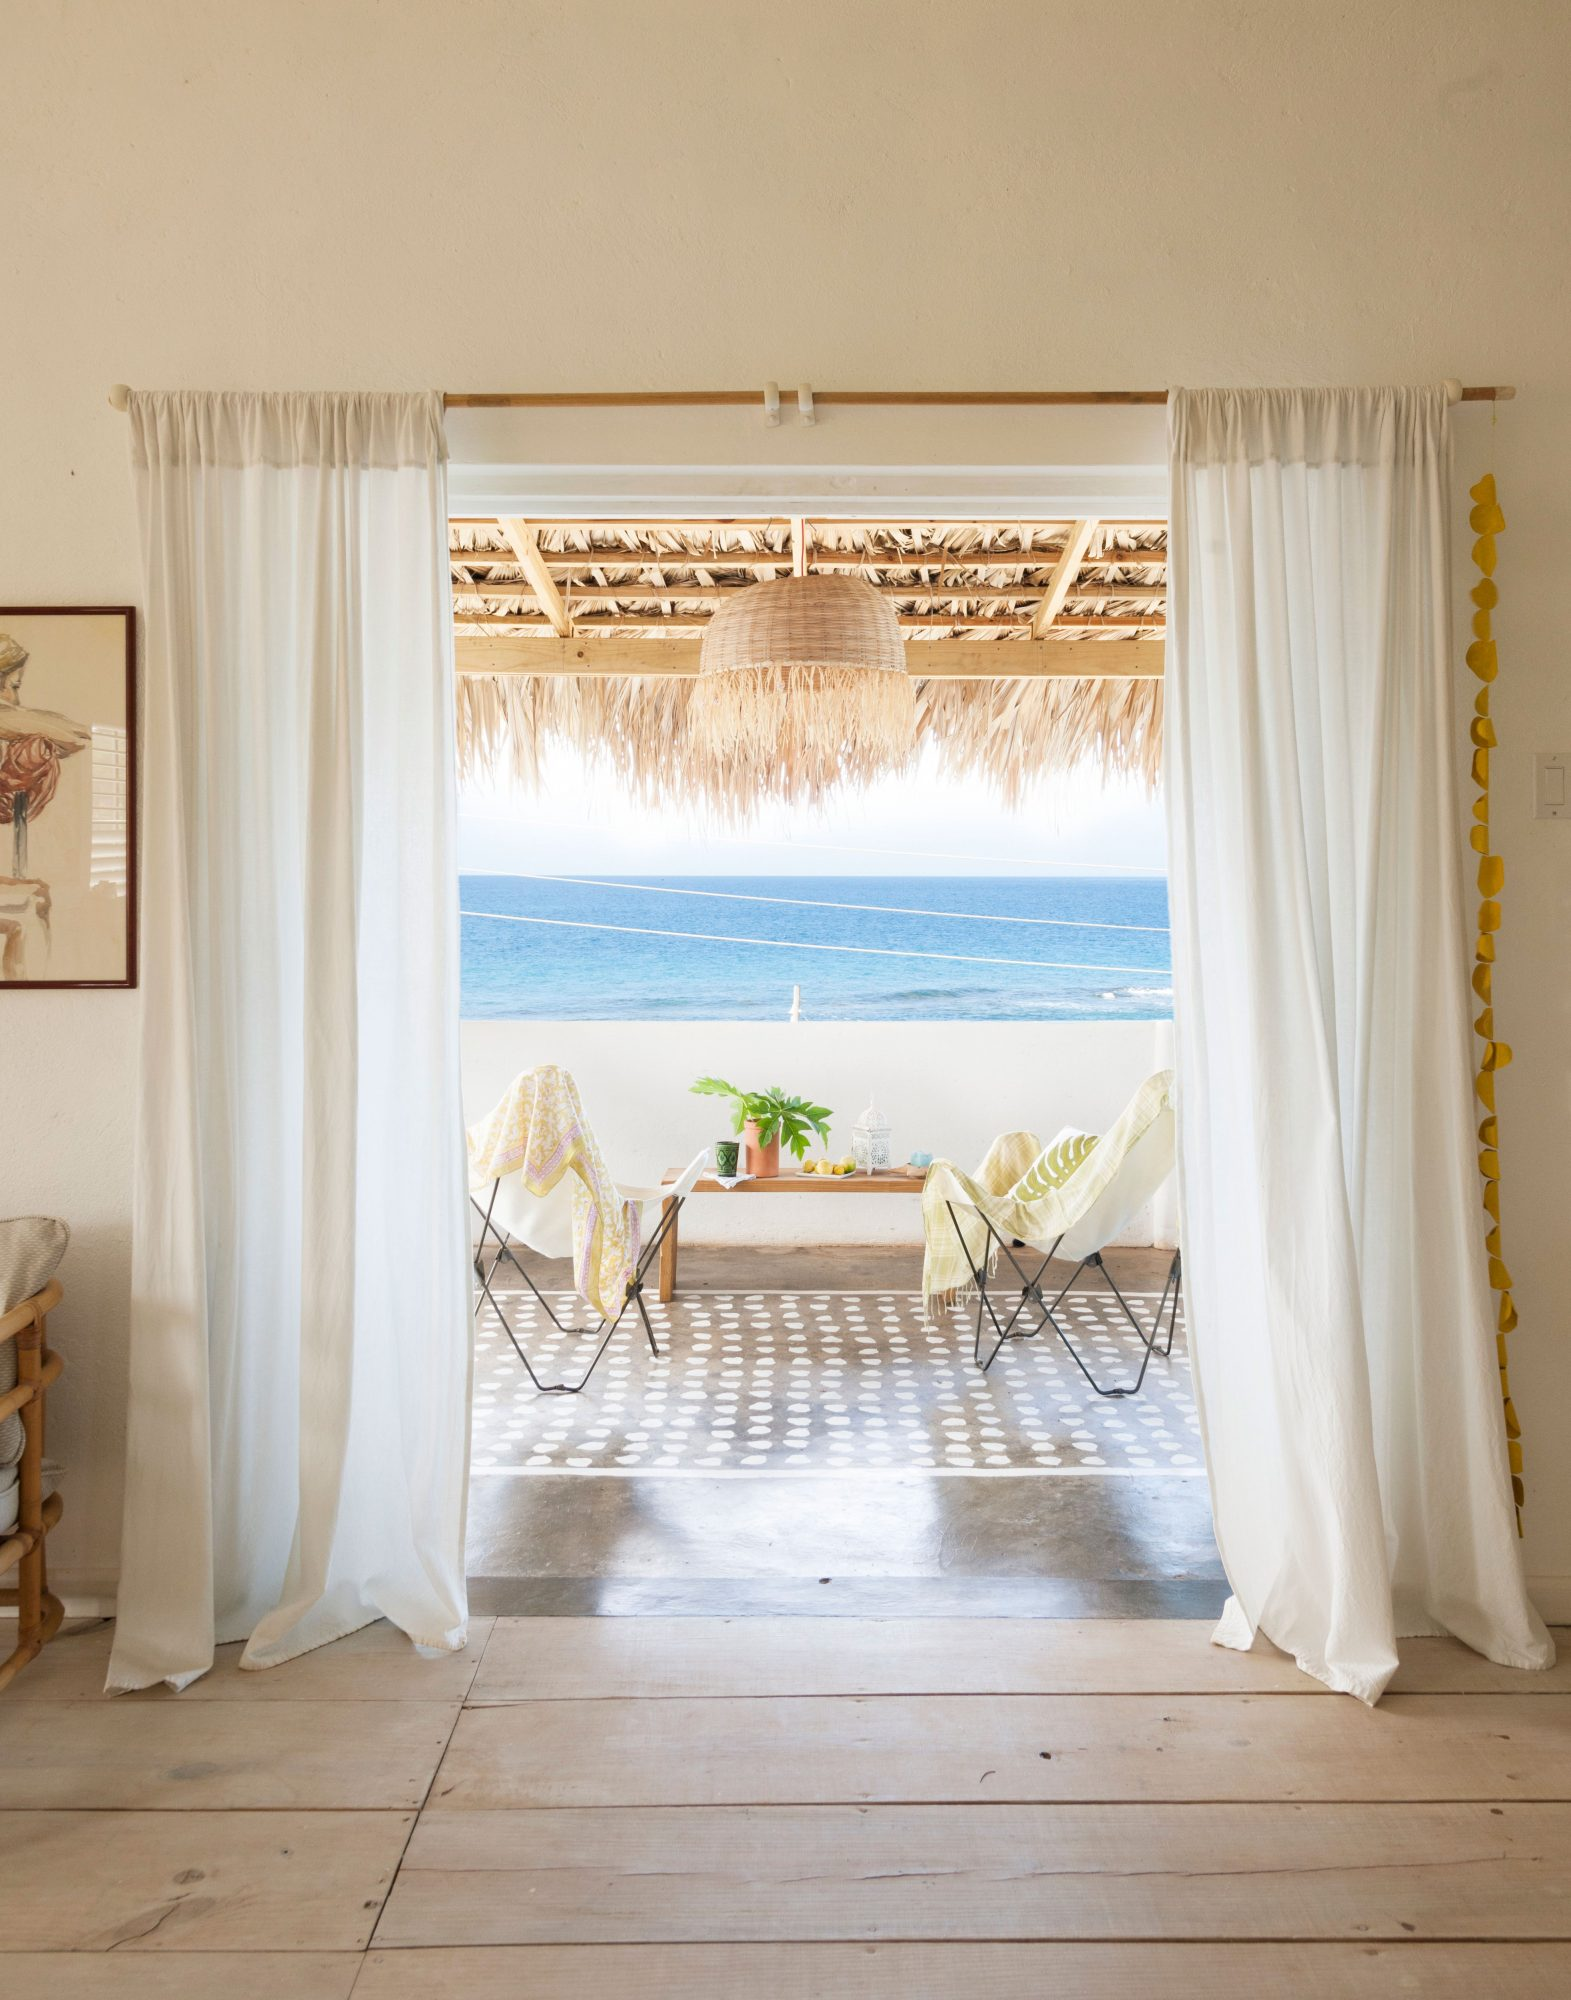 On this balcony in Treasure Beach, Jamaica, the décor is simple. Butterfly chairs and a coffee table are accented with eye-catching concrete floors and a bamboo pendant.